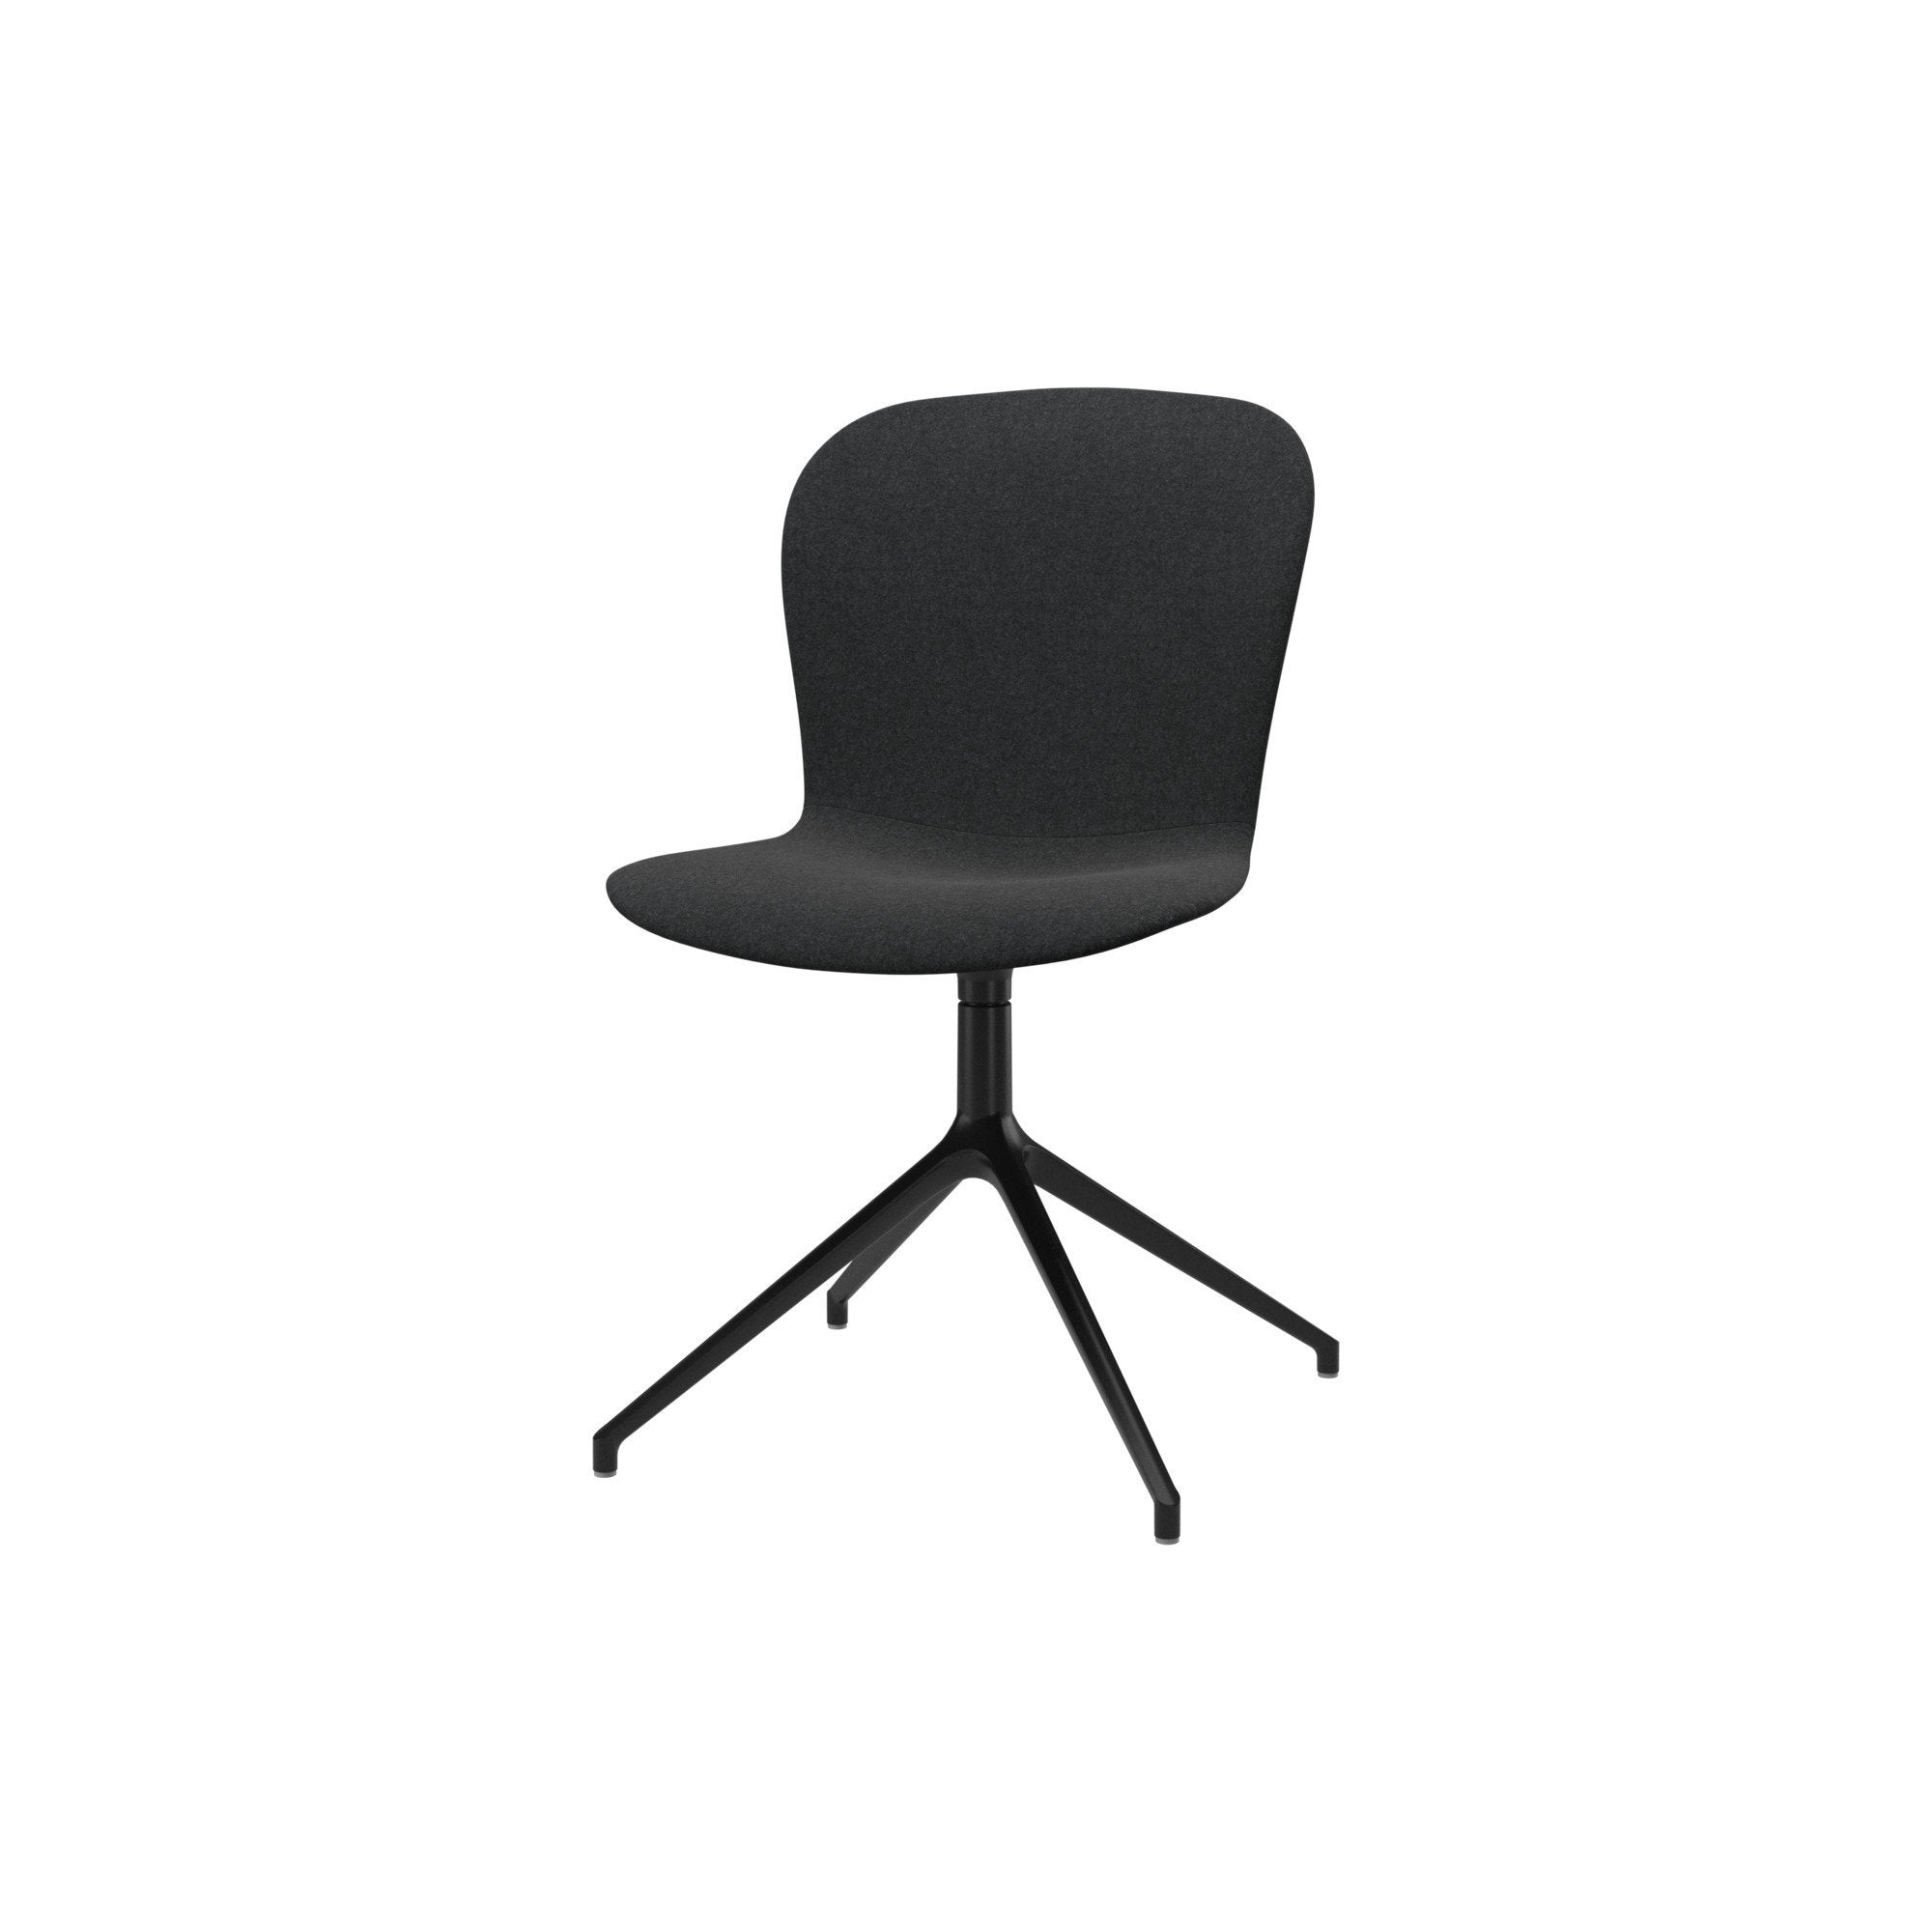 Adelaide Chair with swivel function - Dark Gray